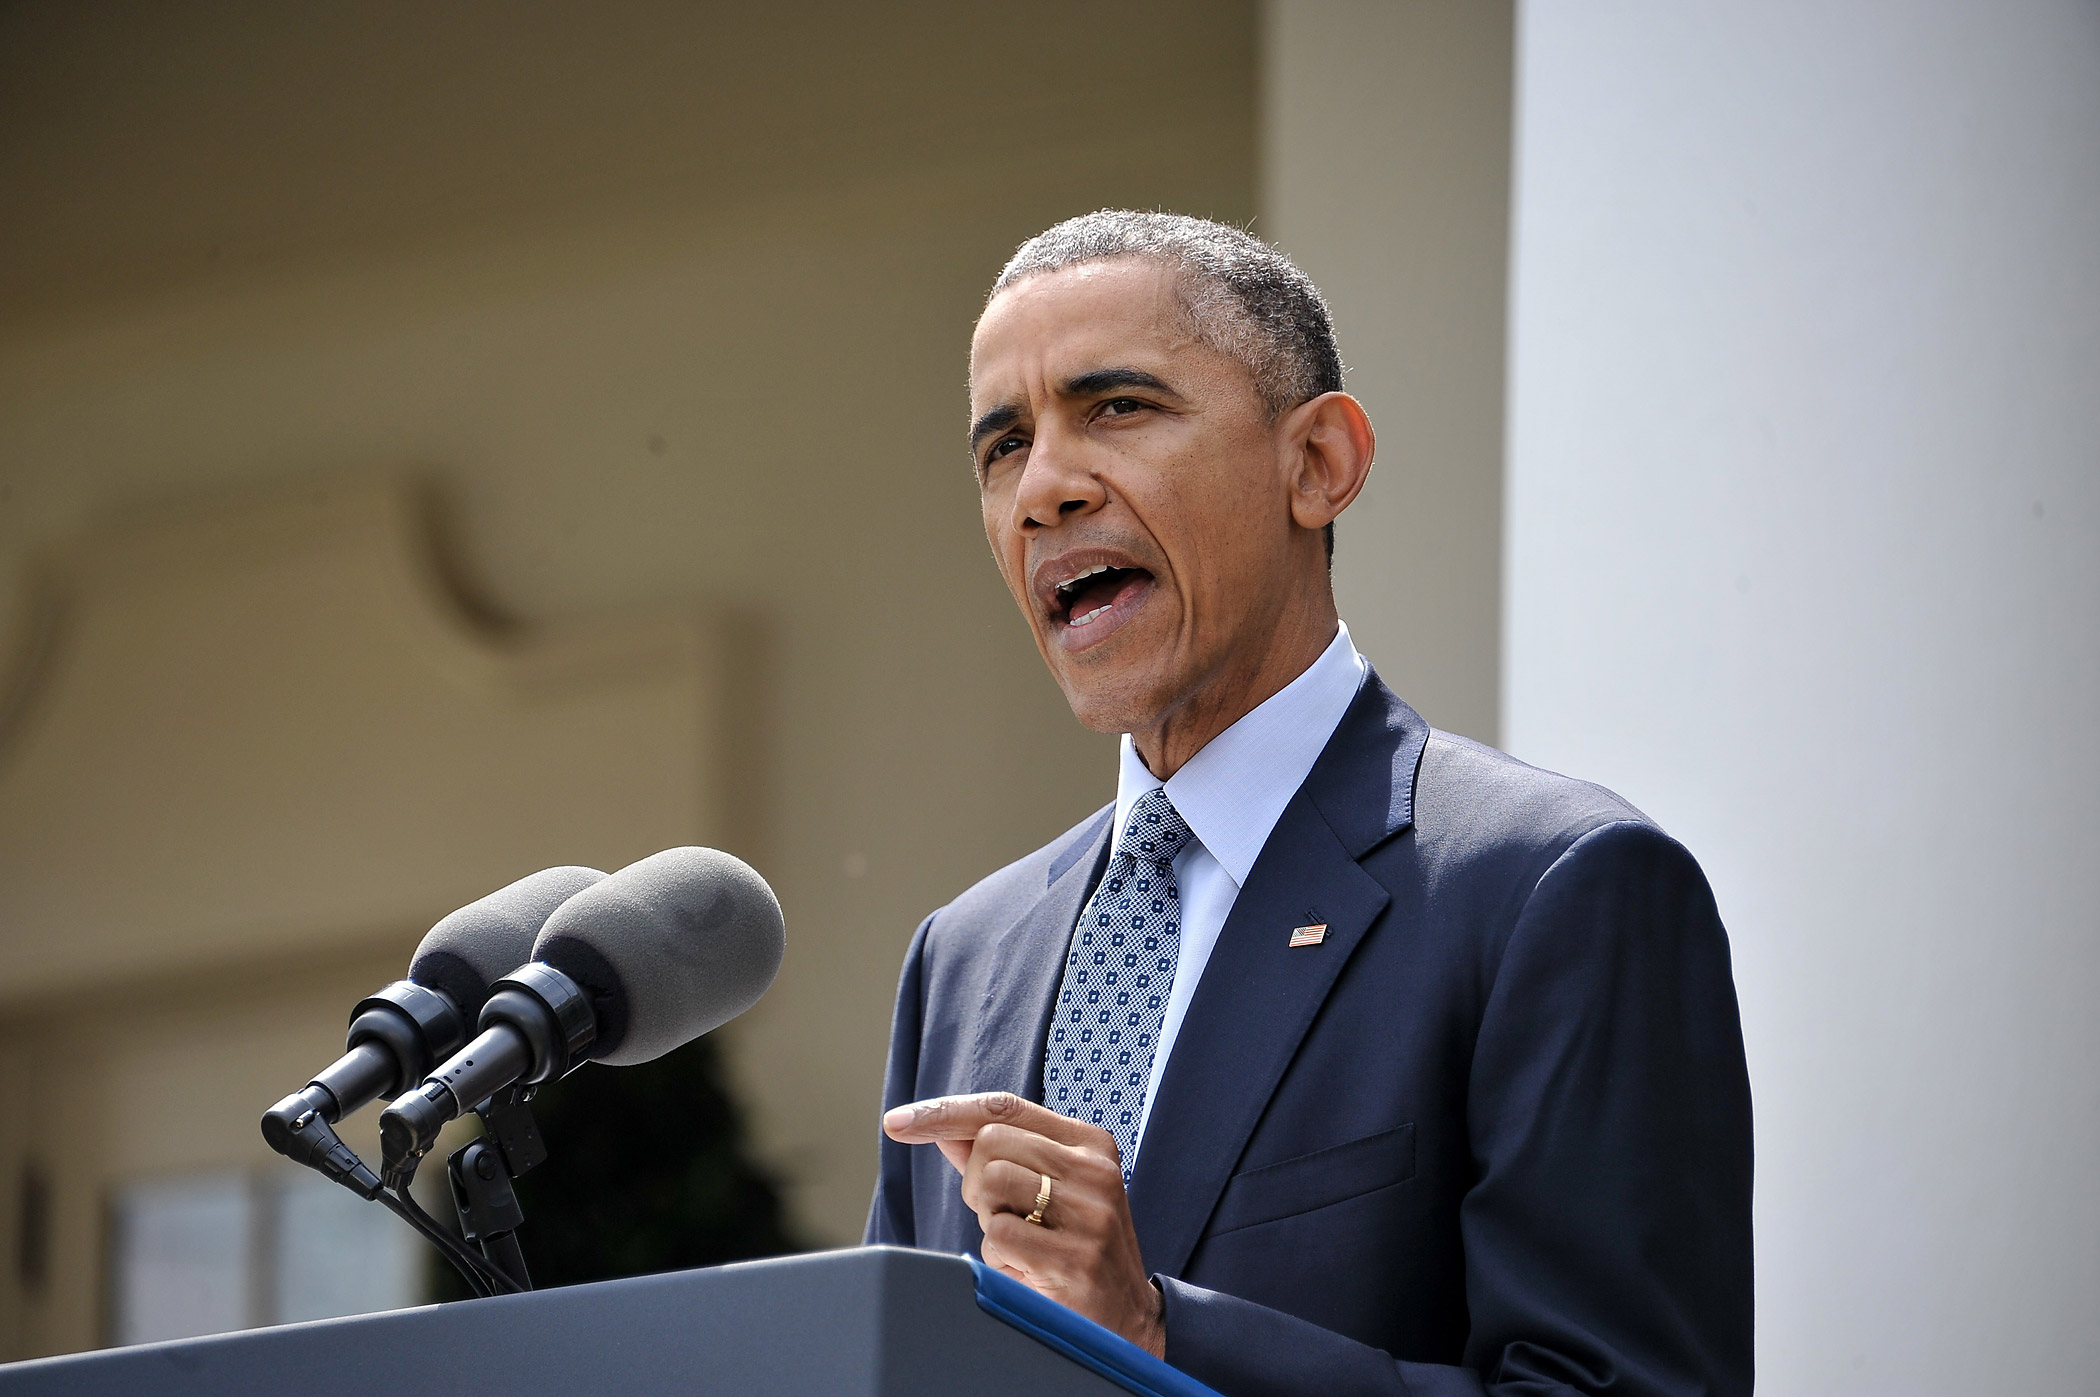 US President Barack Obama makes a statement at the White House in Washington, DC, on April 2, 2015 after a deal was reached on Iran's nuclear program.